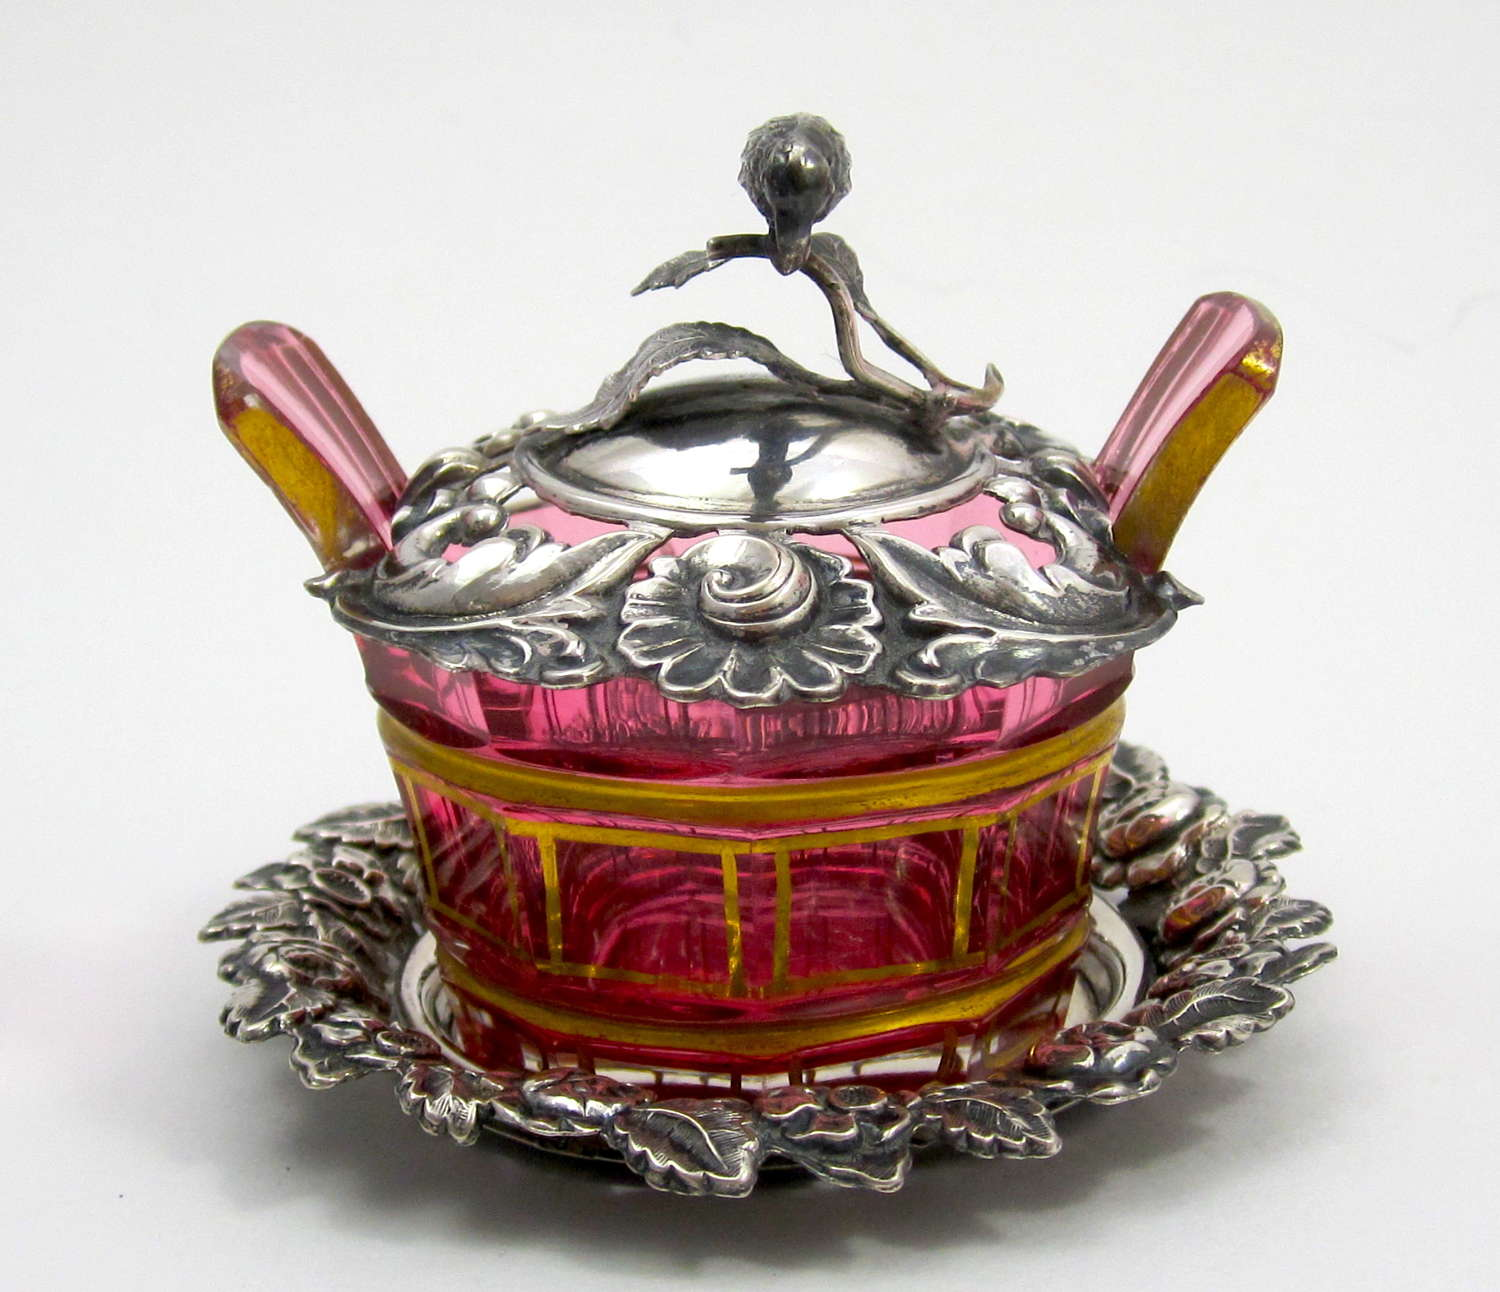 Miniature Antique French Cranberry Dish with Silver Plate and Lid